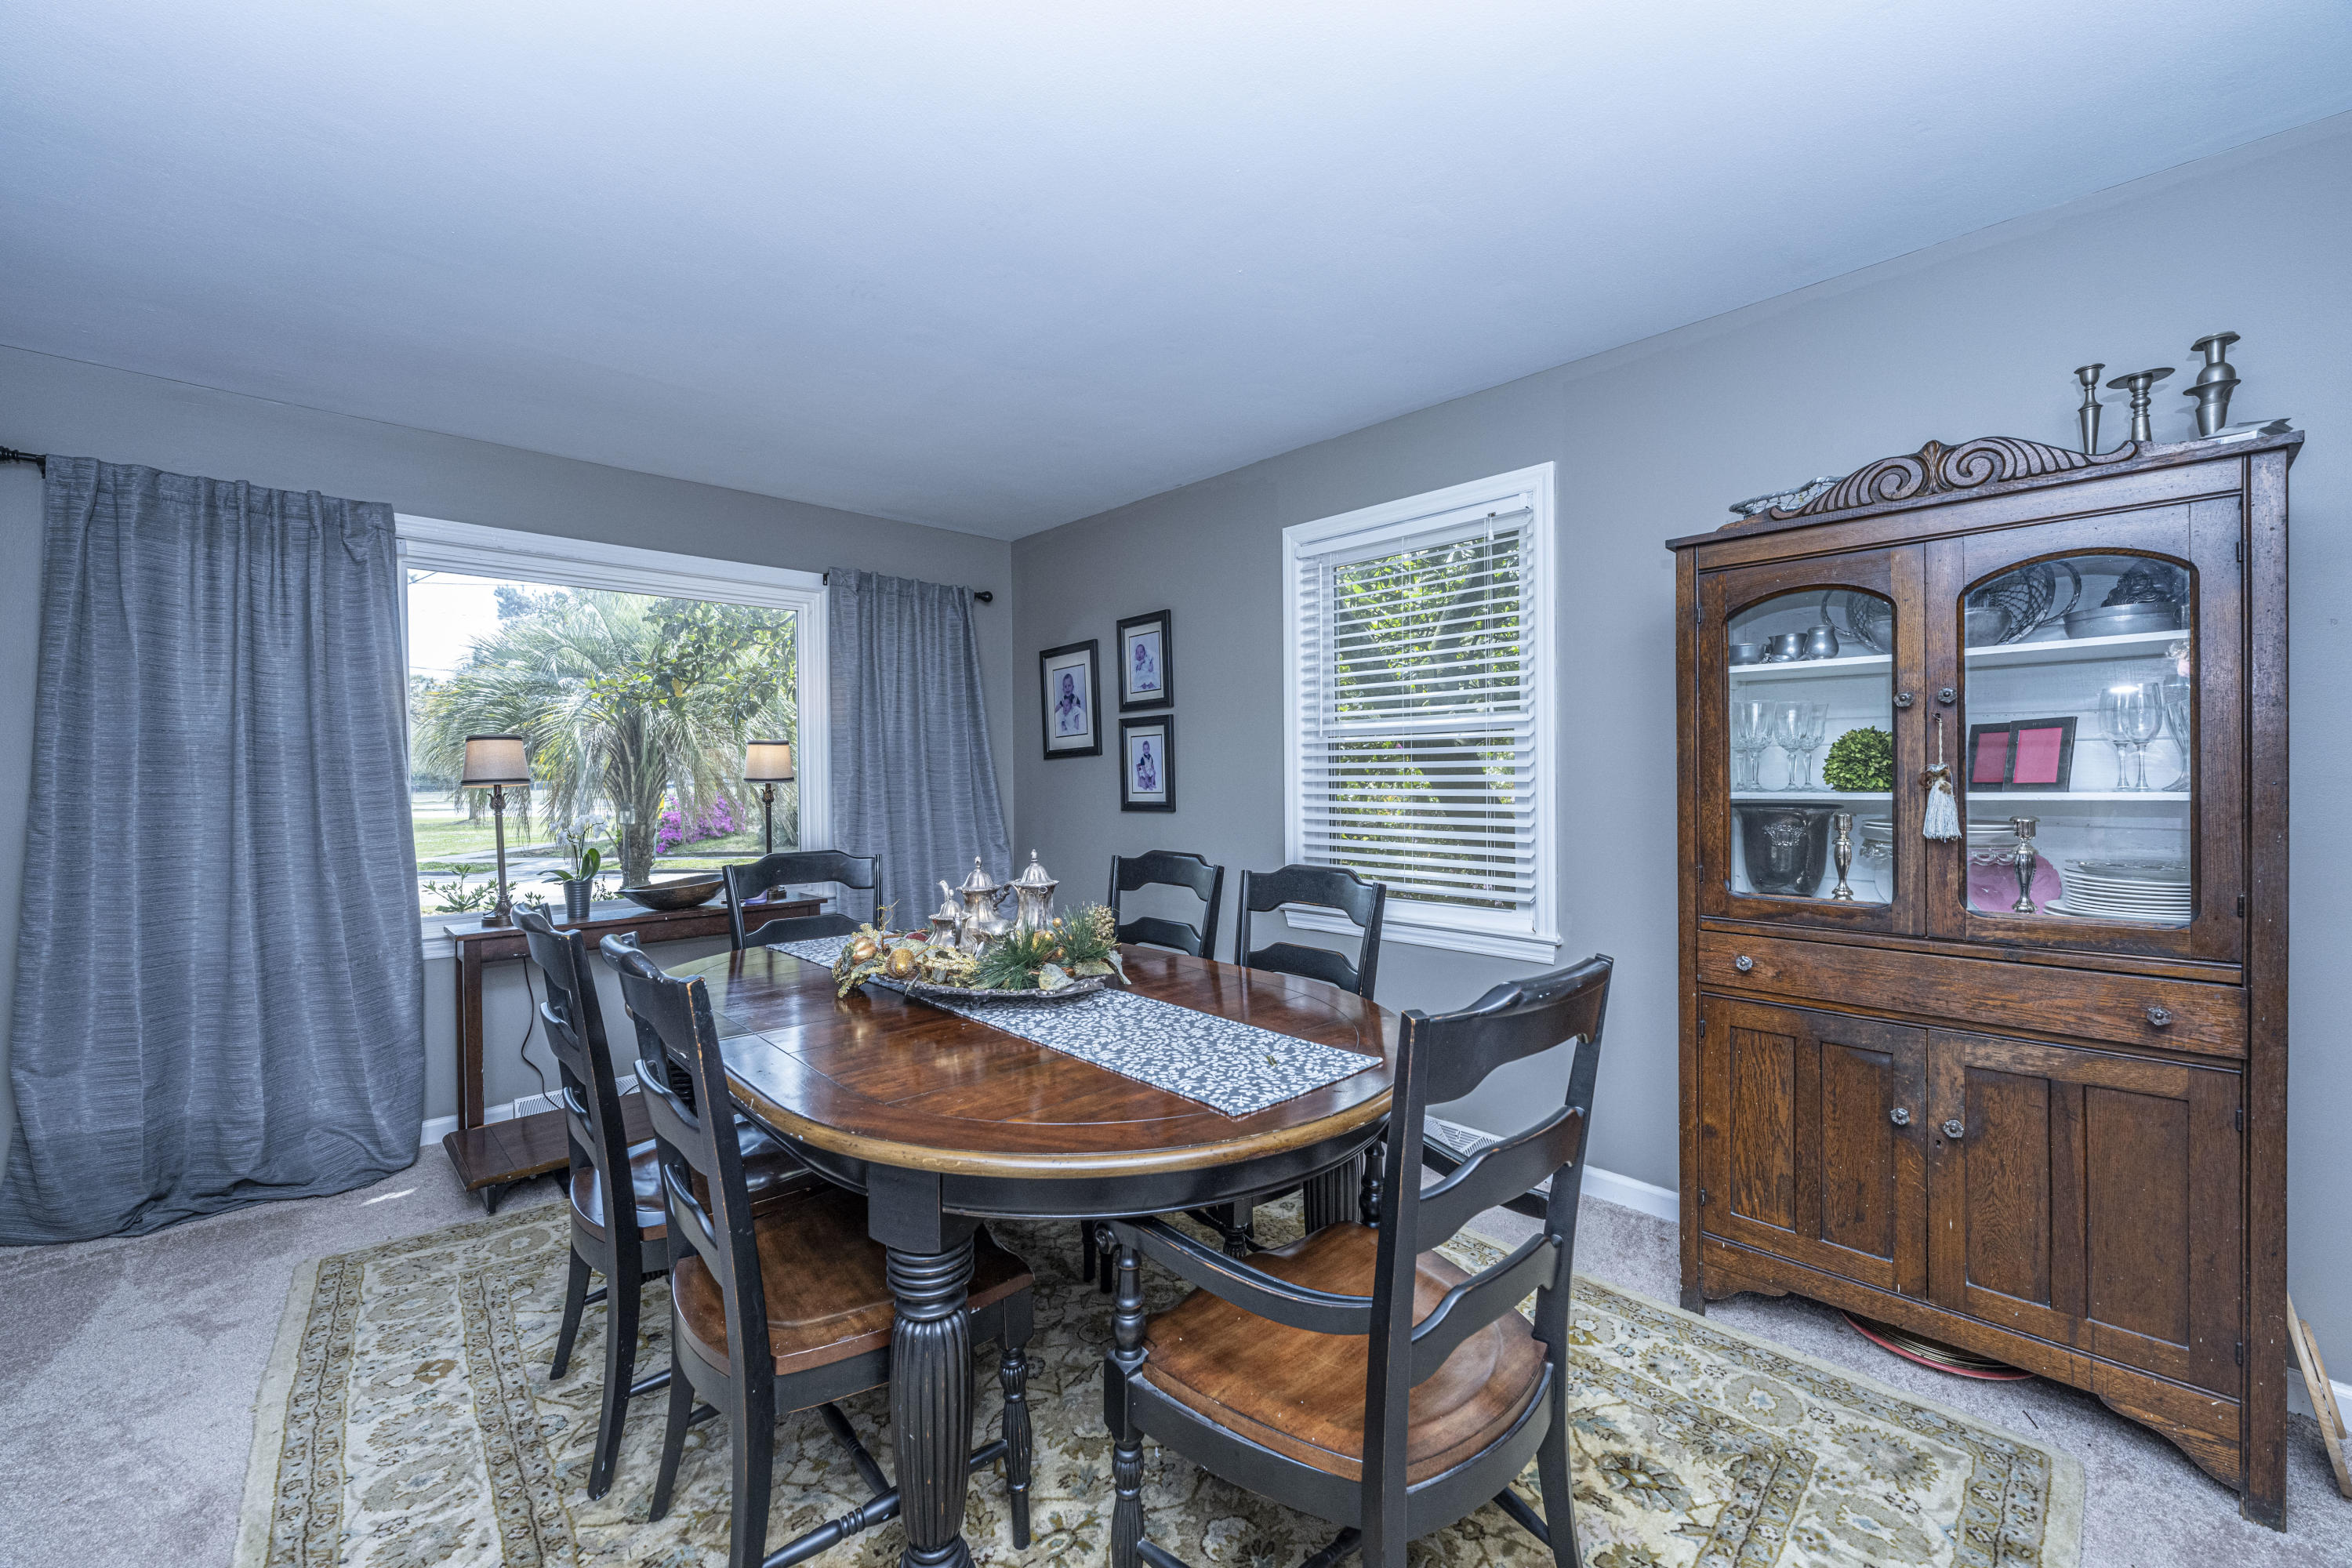 Stiles Point Homes For Sale - 775 Sparrow, Charleston, SC - 25